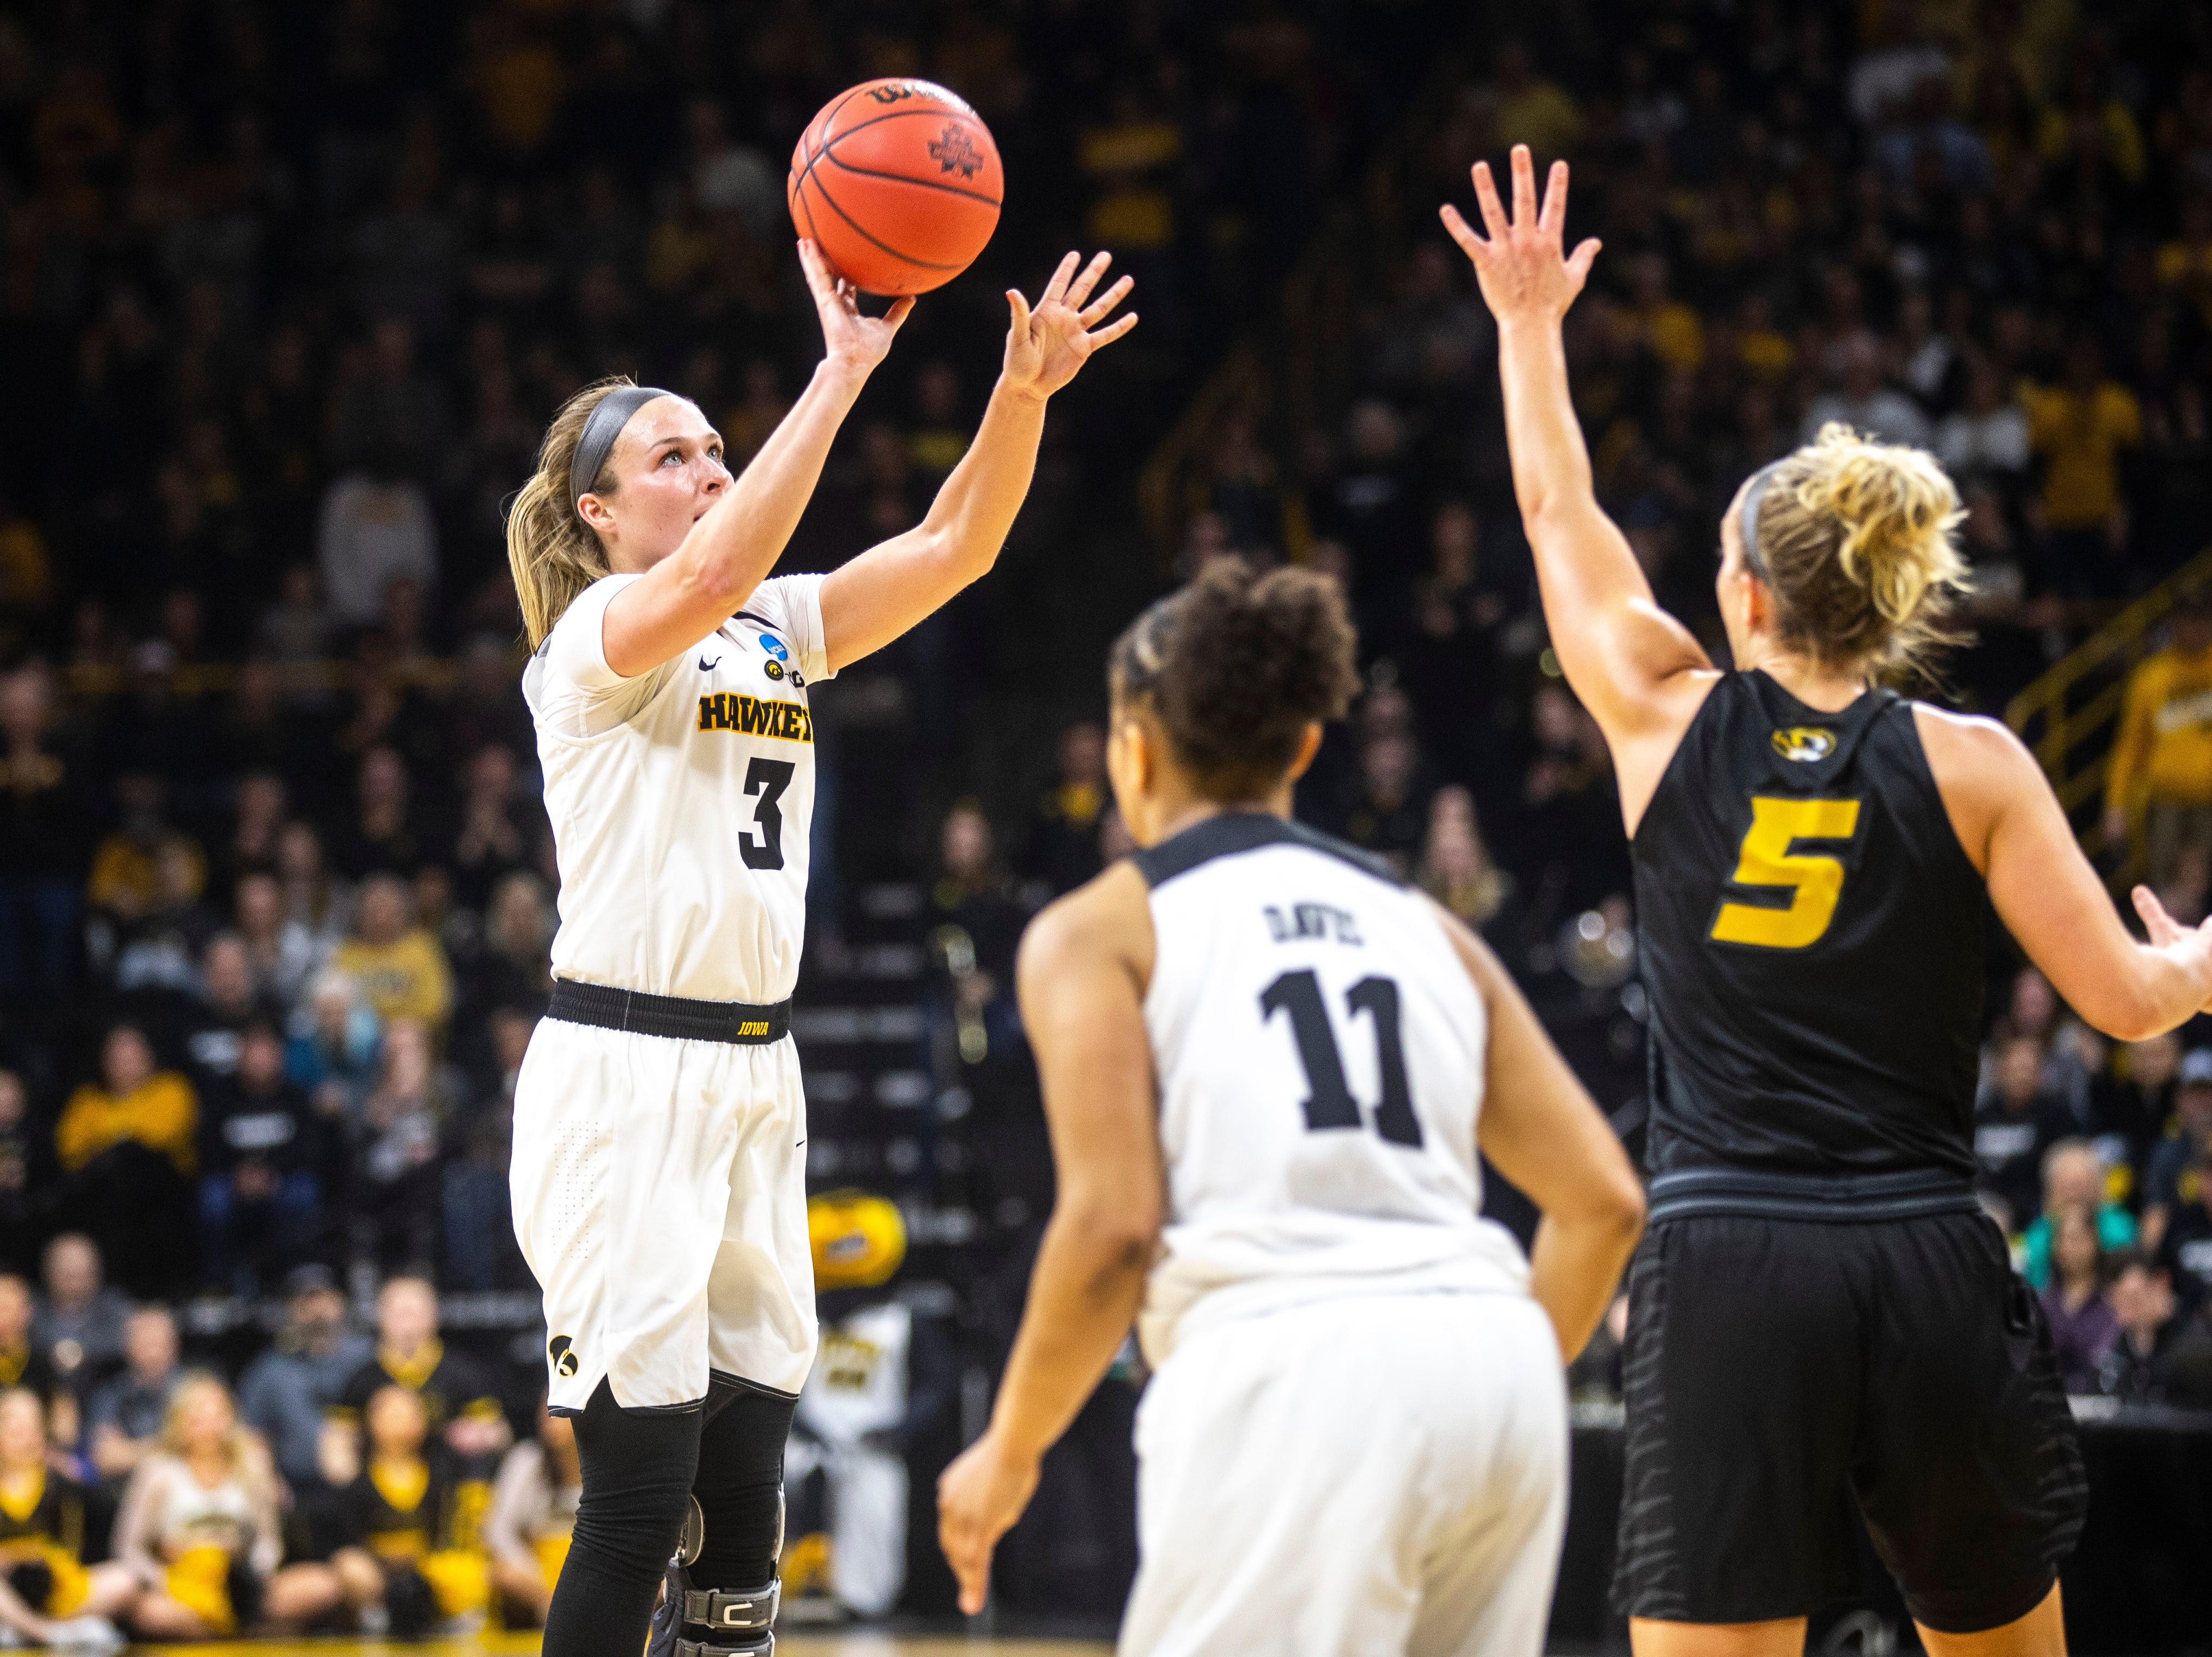 Iowa guard Makenzie Meyer (3) shoots a basket as Missouri guard Lauren Aldridge (5) defends during a NCAA women's basketball tournament second-round game, Sunday, March 24, 2019, at Carver-Hawkeye Arena in Iowa City, Iowa.